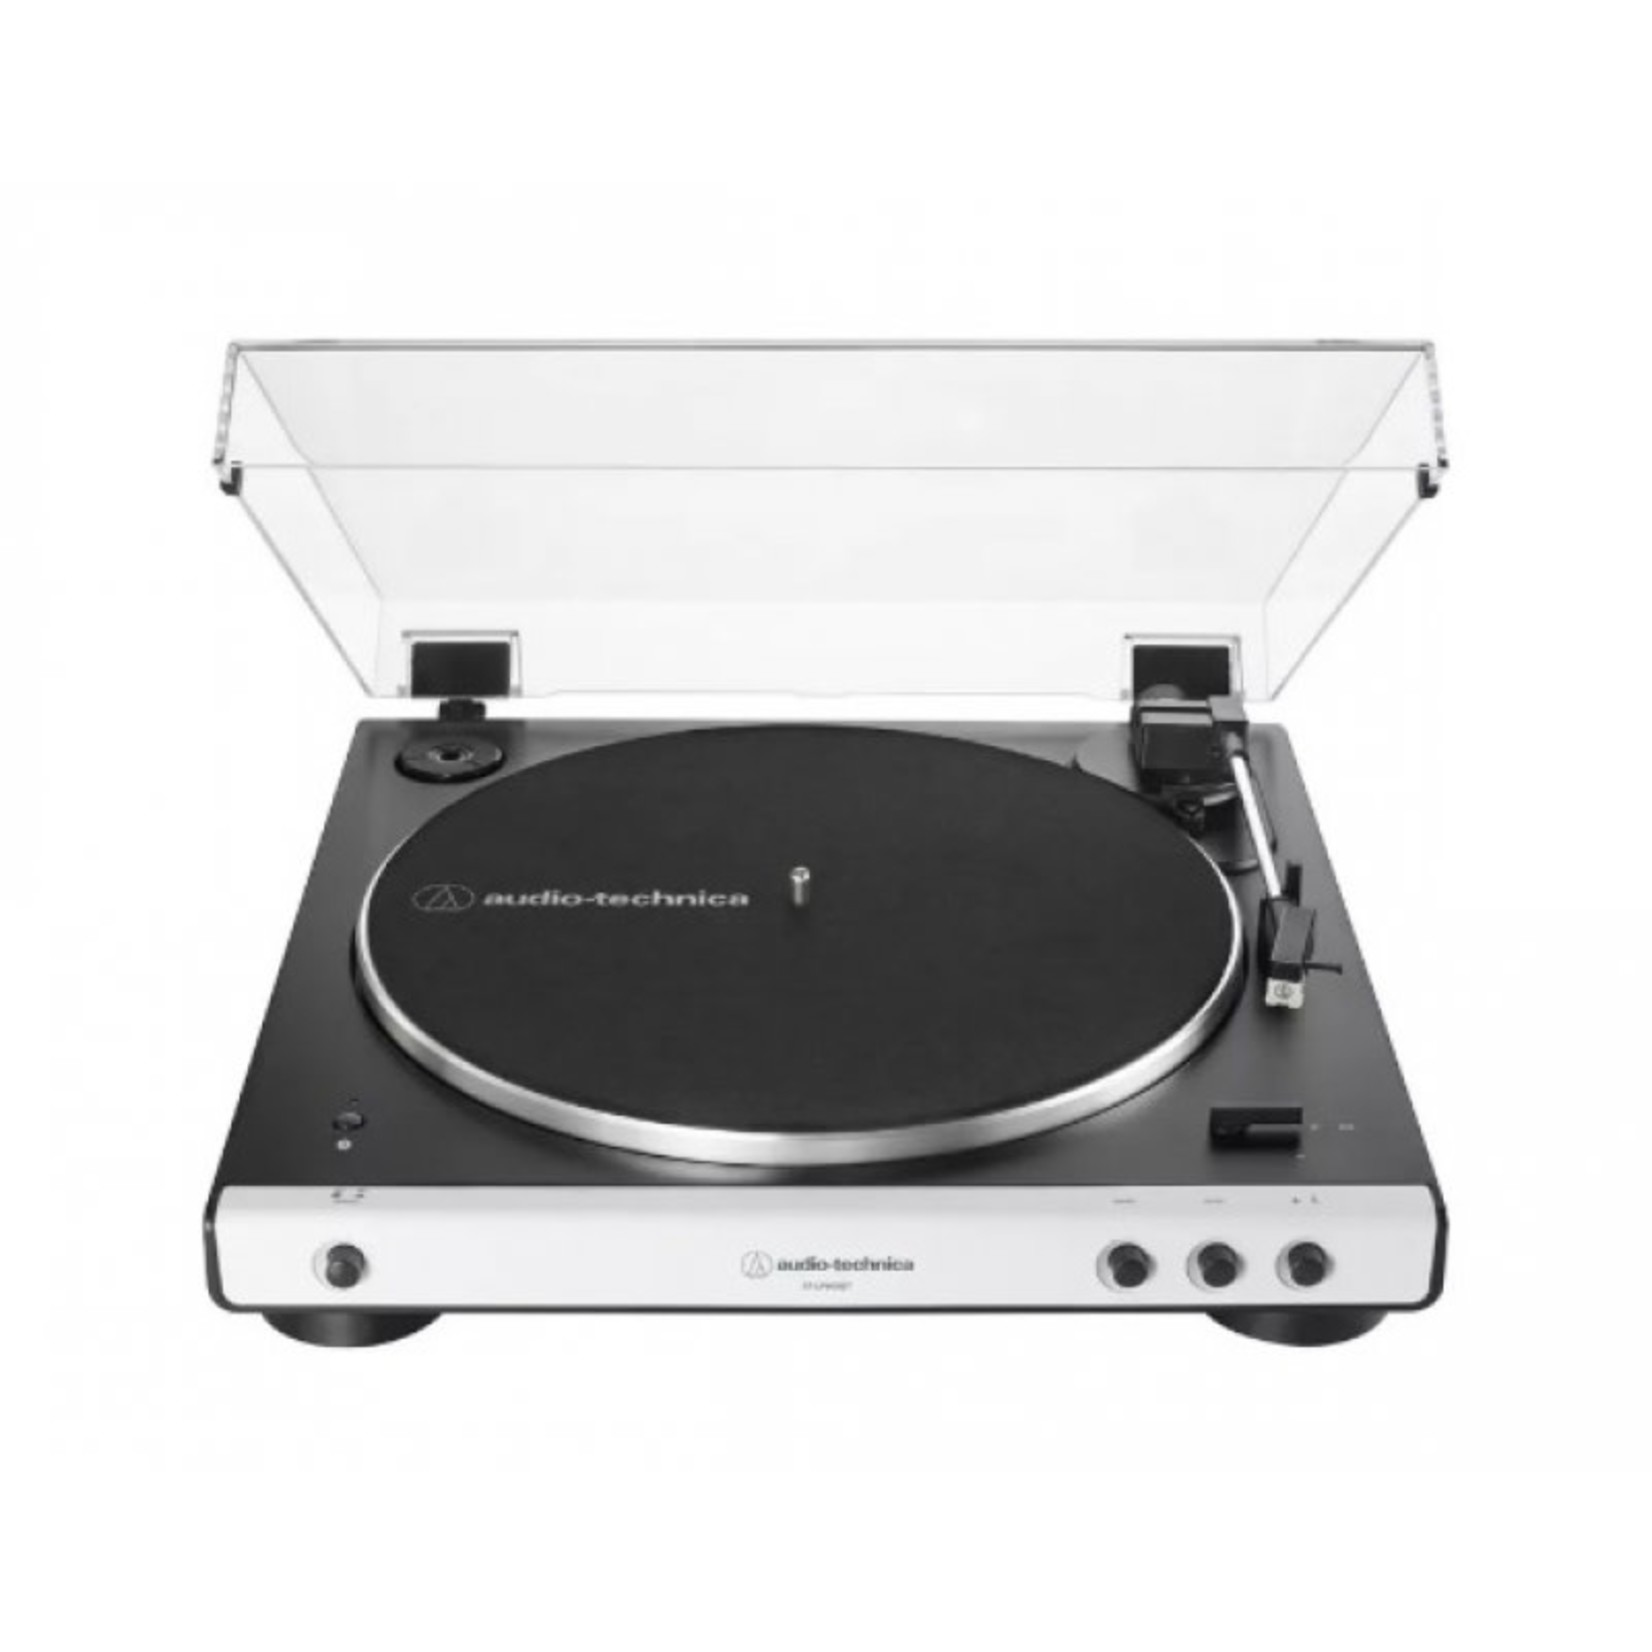 AUDIO-TECHNICA AT-LP60XBT TURNTABLE WITH BLUETOOTH